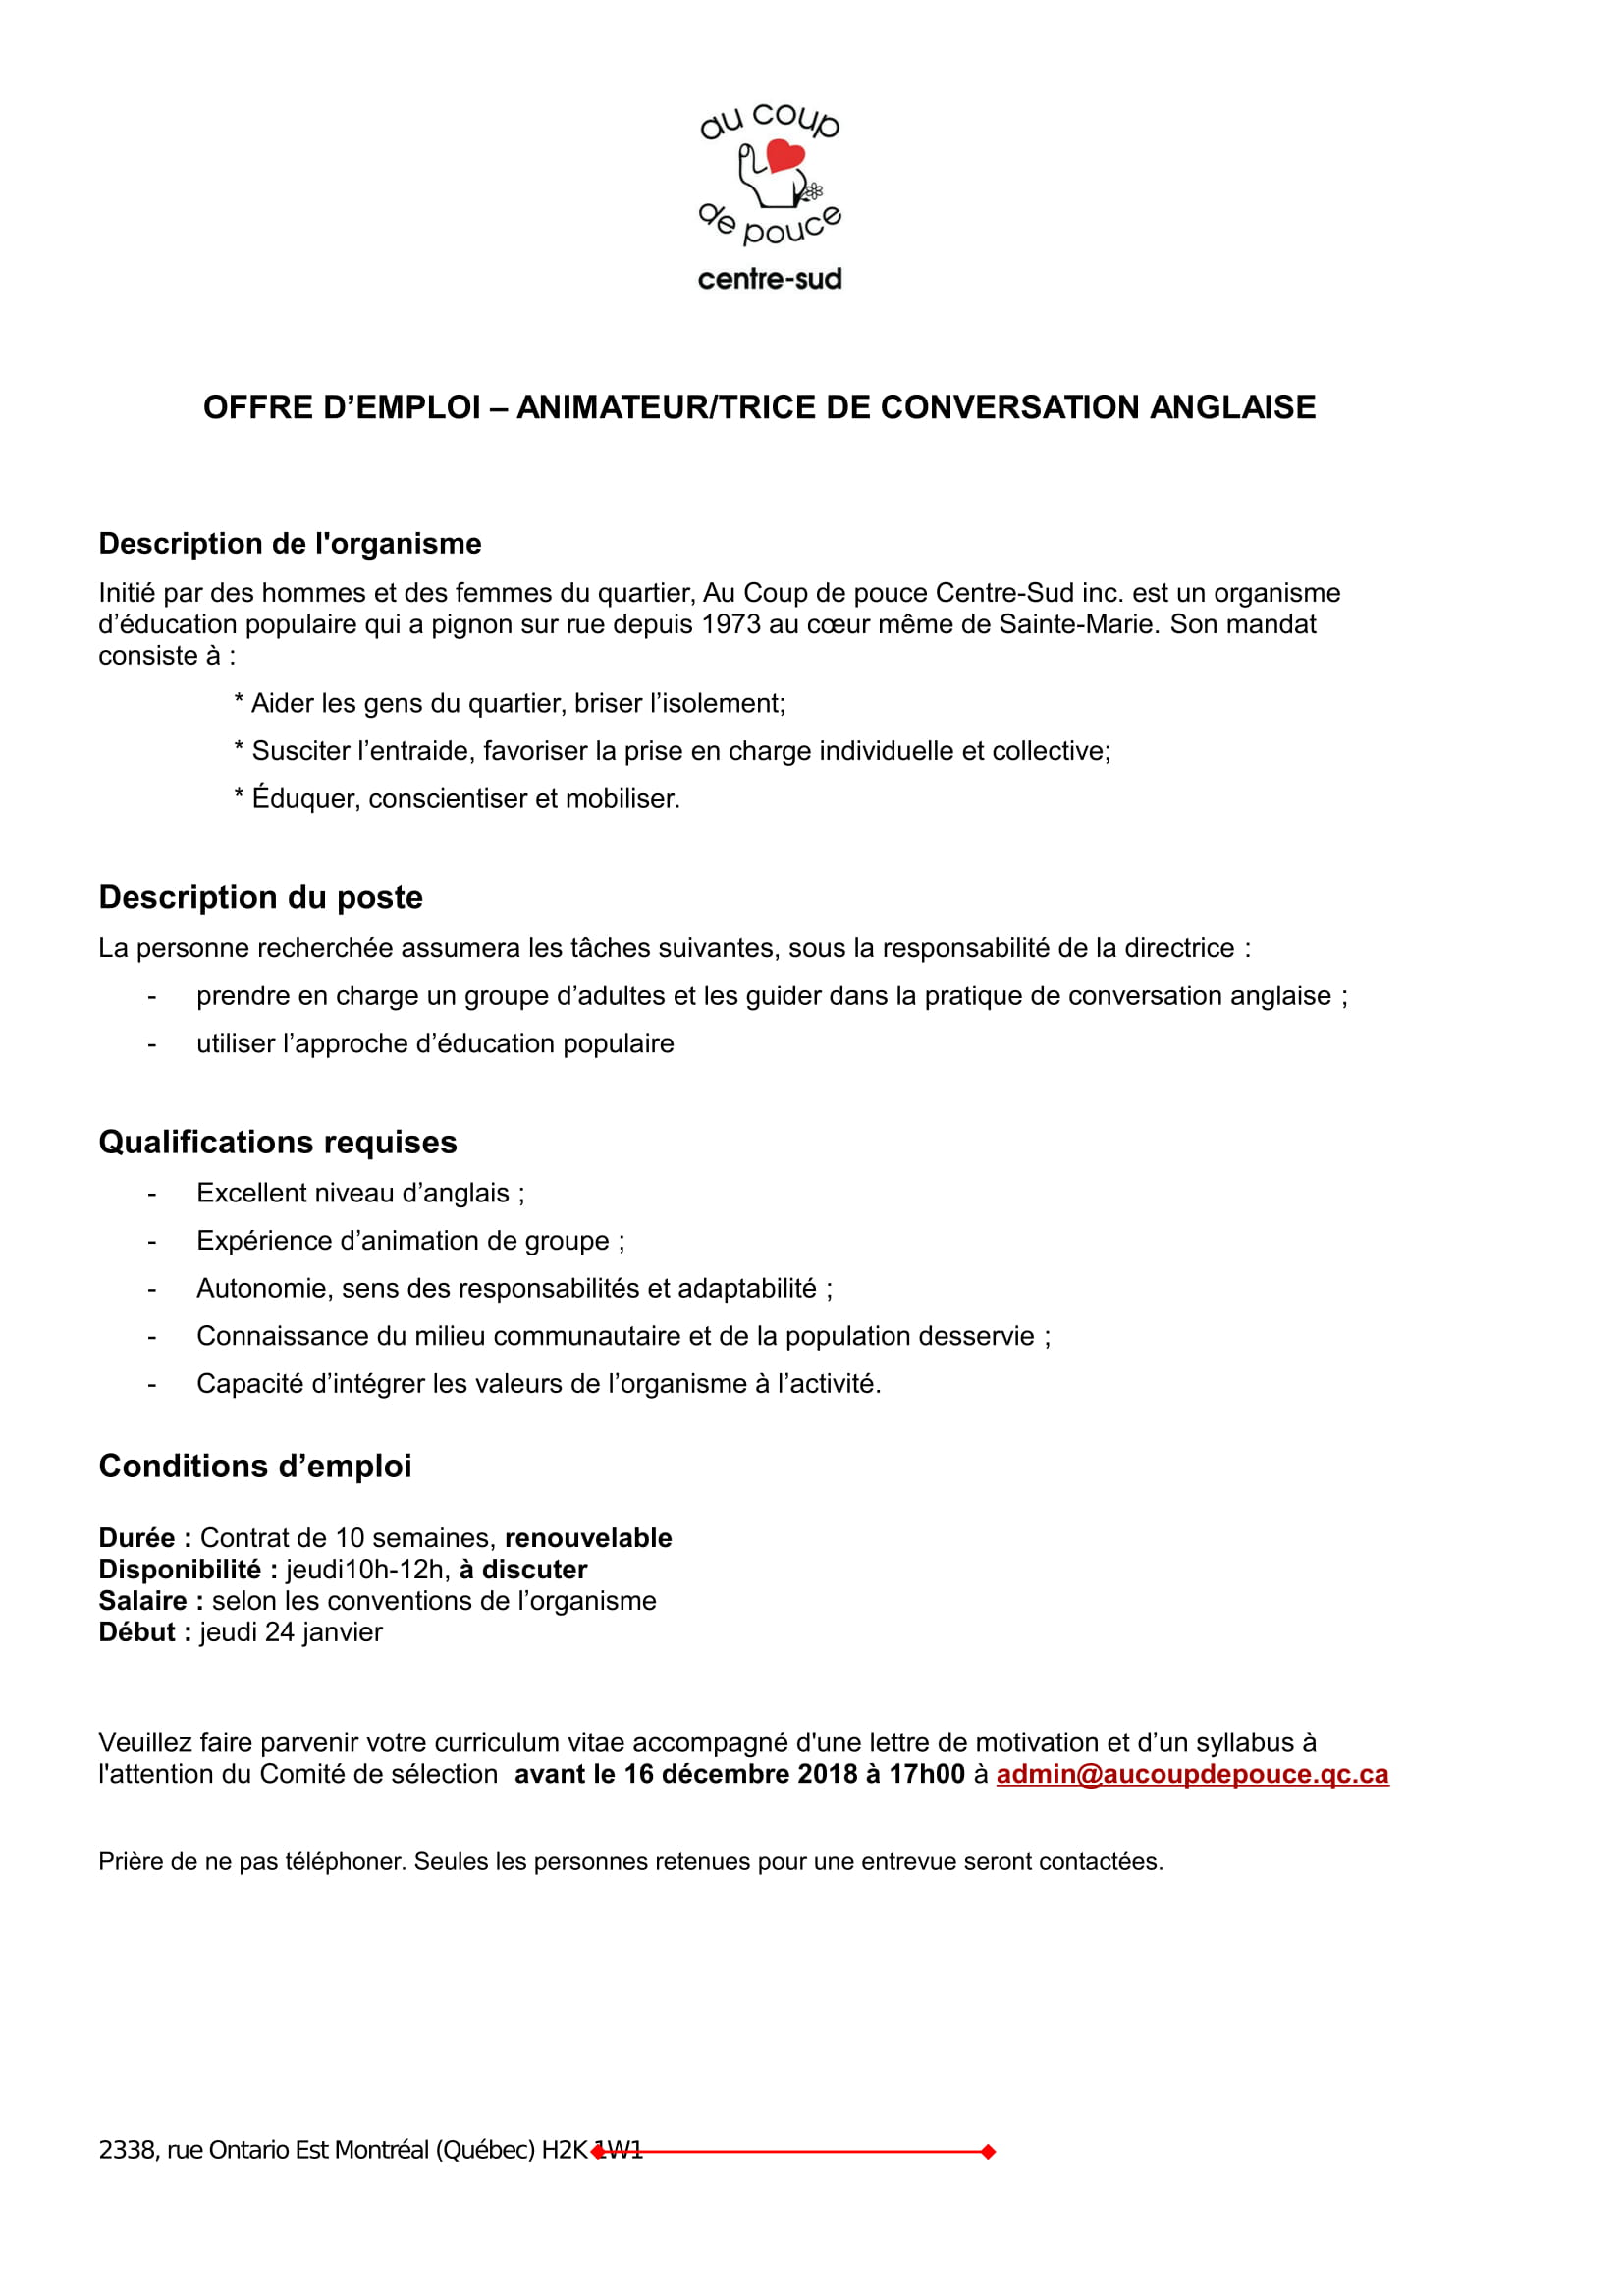 cv personalite exemple